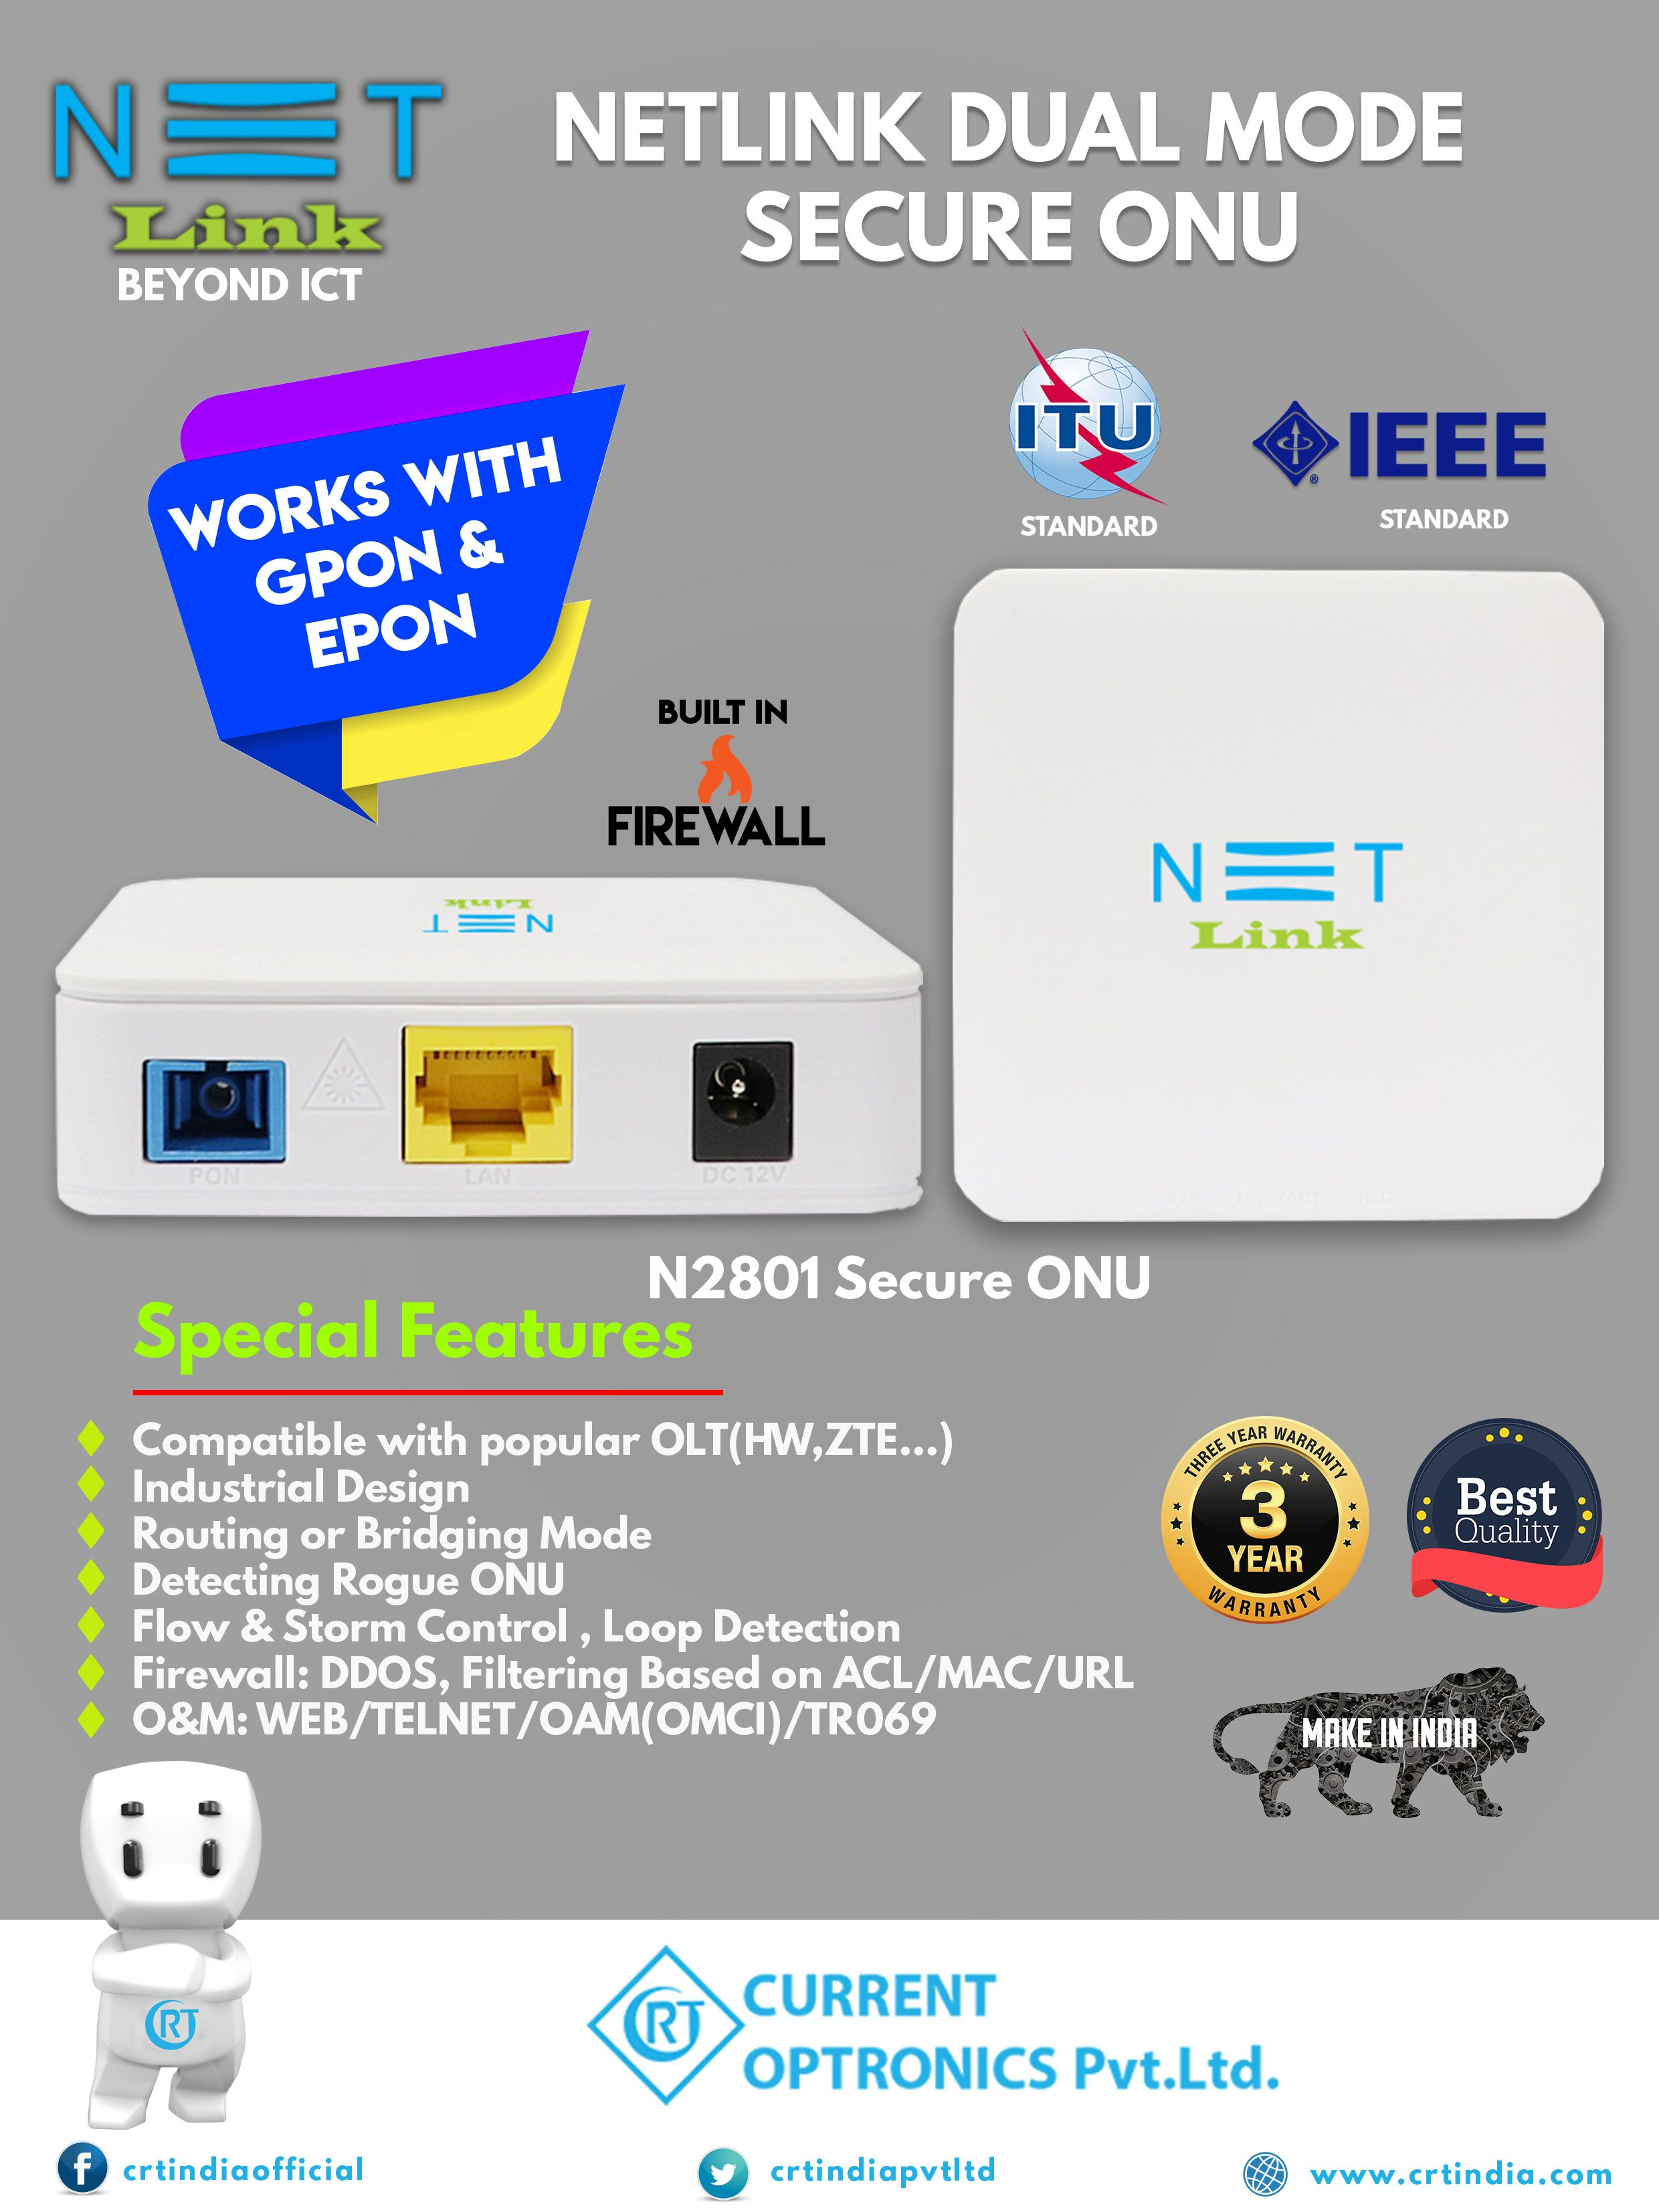 Dual Mode Onu Works On Both Gpon Epon With High Security Features